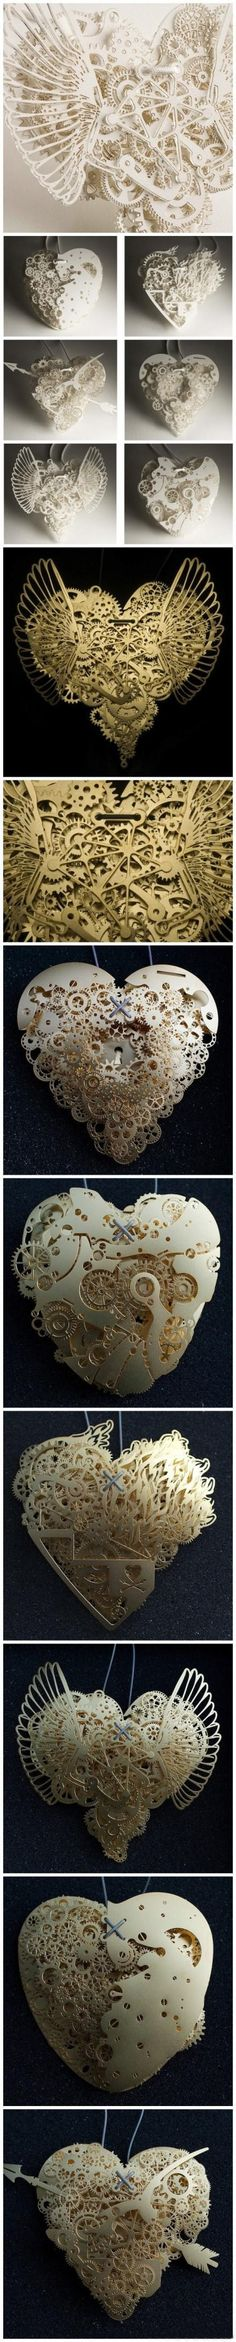 Mechanical heart paper sculptures